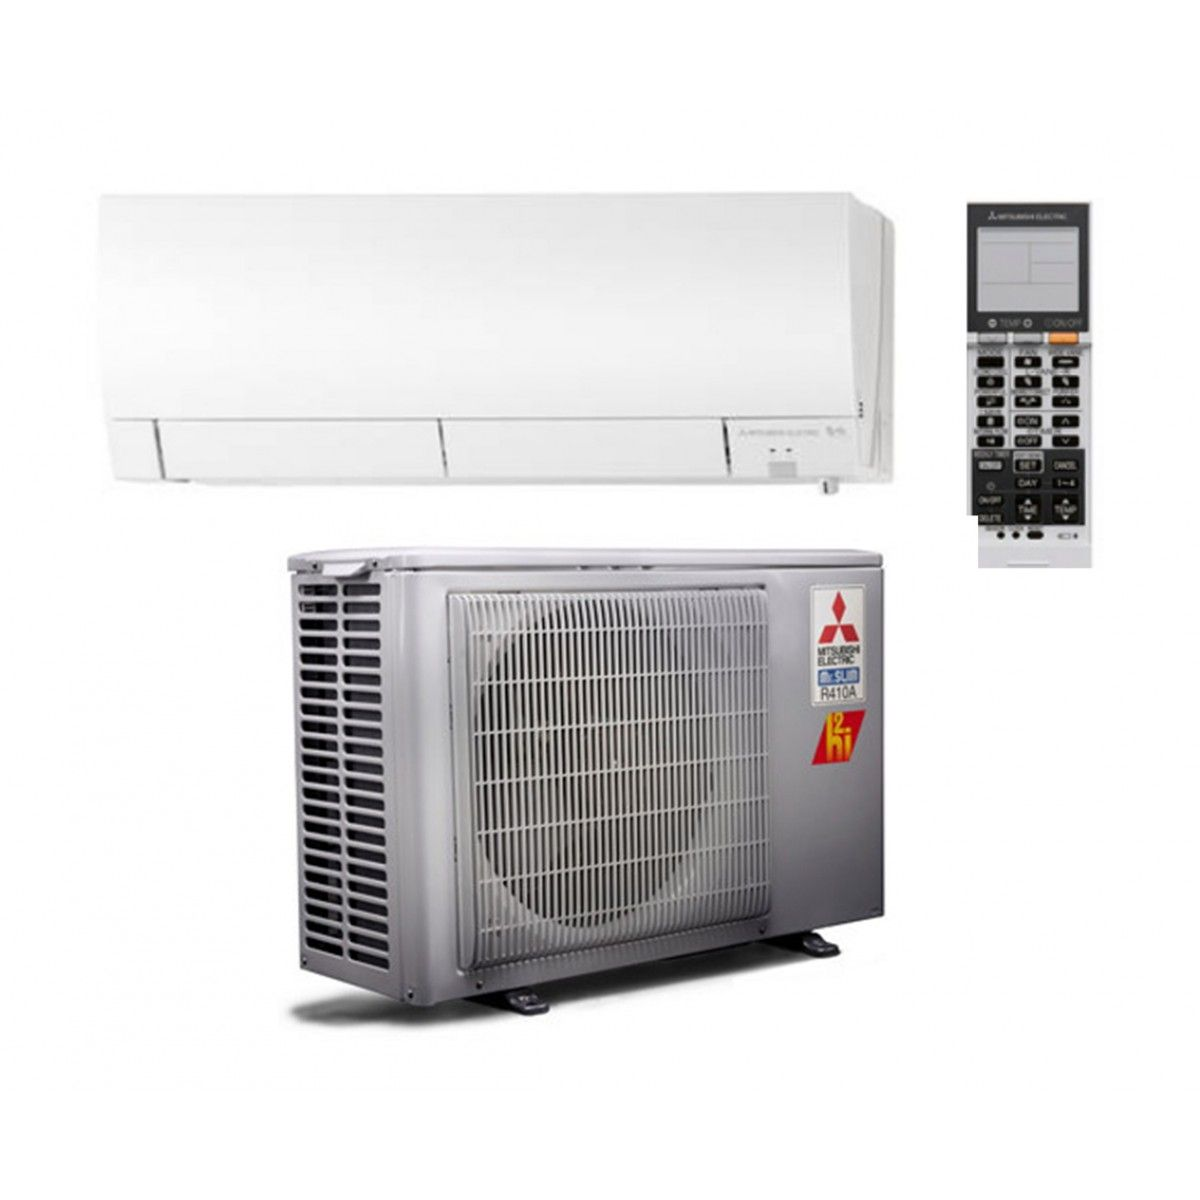 Average cost of new furnace and ac for home - Mitsubishi 12 000 Btu Heat Pump Hyper Heat 26 Seer System